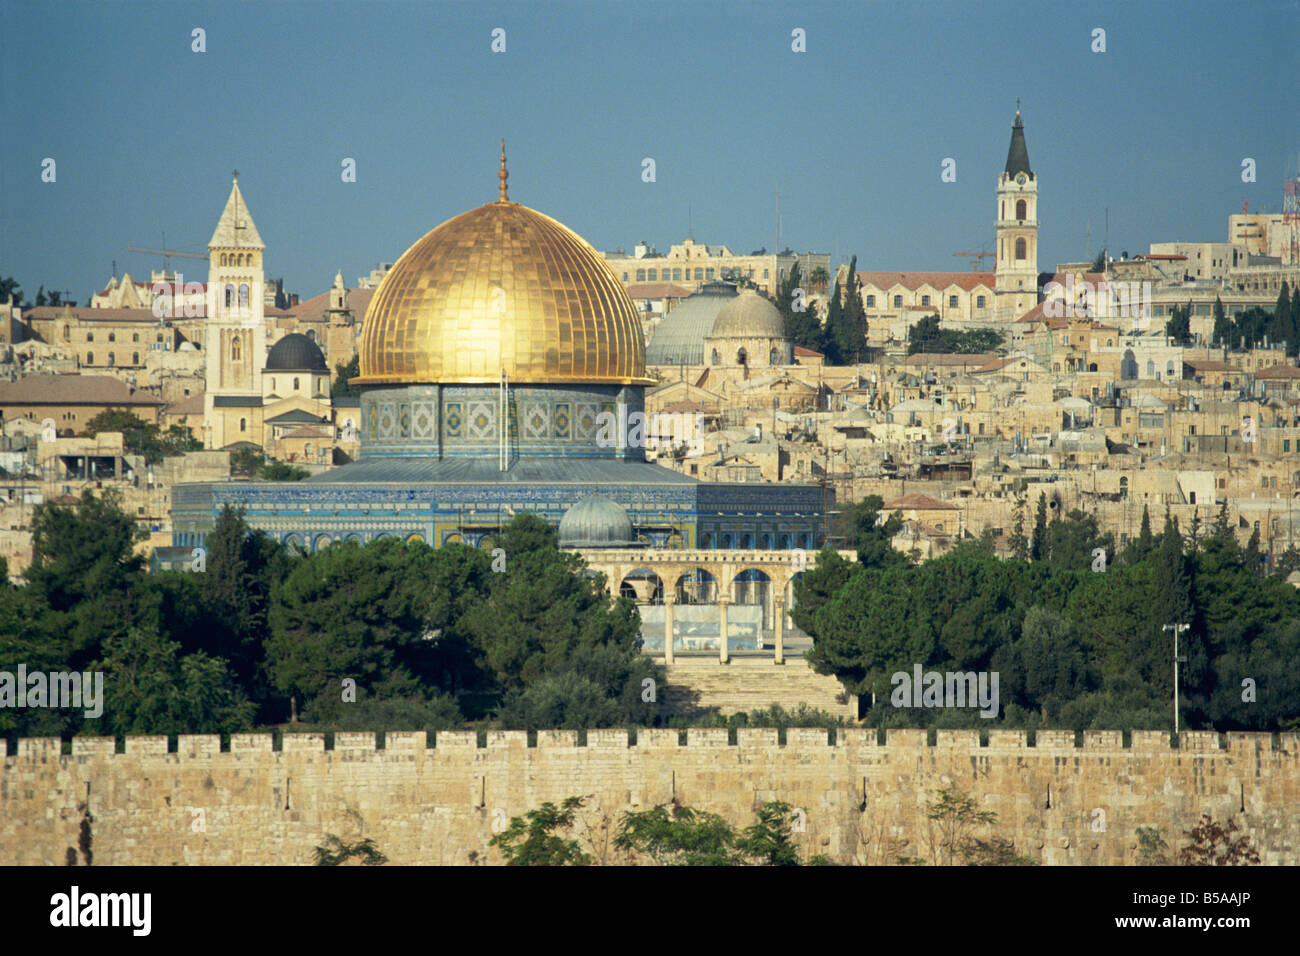 Dome of the Rock and Temple Mount from Mount of Olives, UNESCO World Heritage Site, Jerusalem, Israel, Middle East - Stock Image